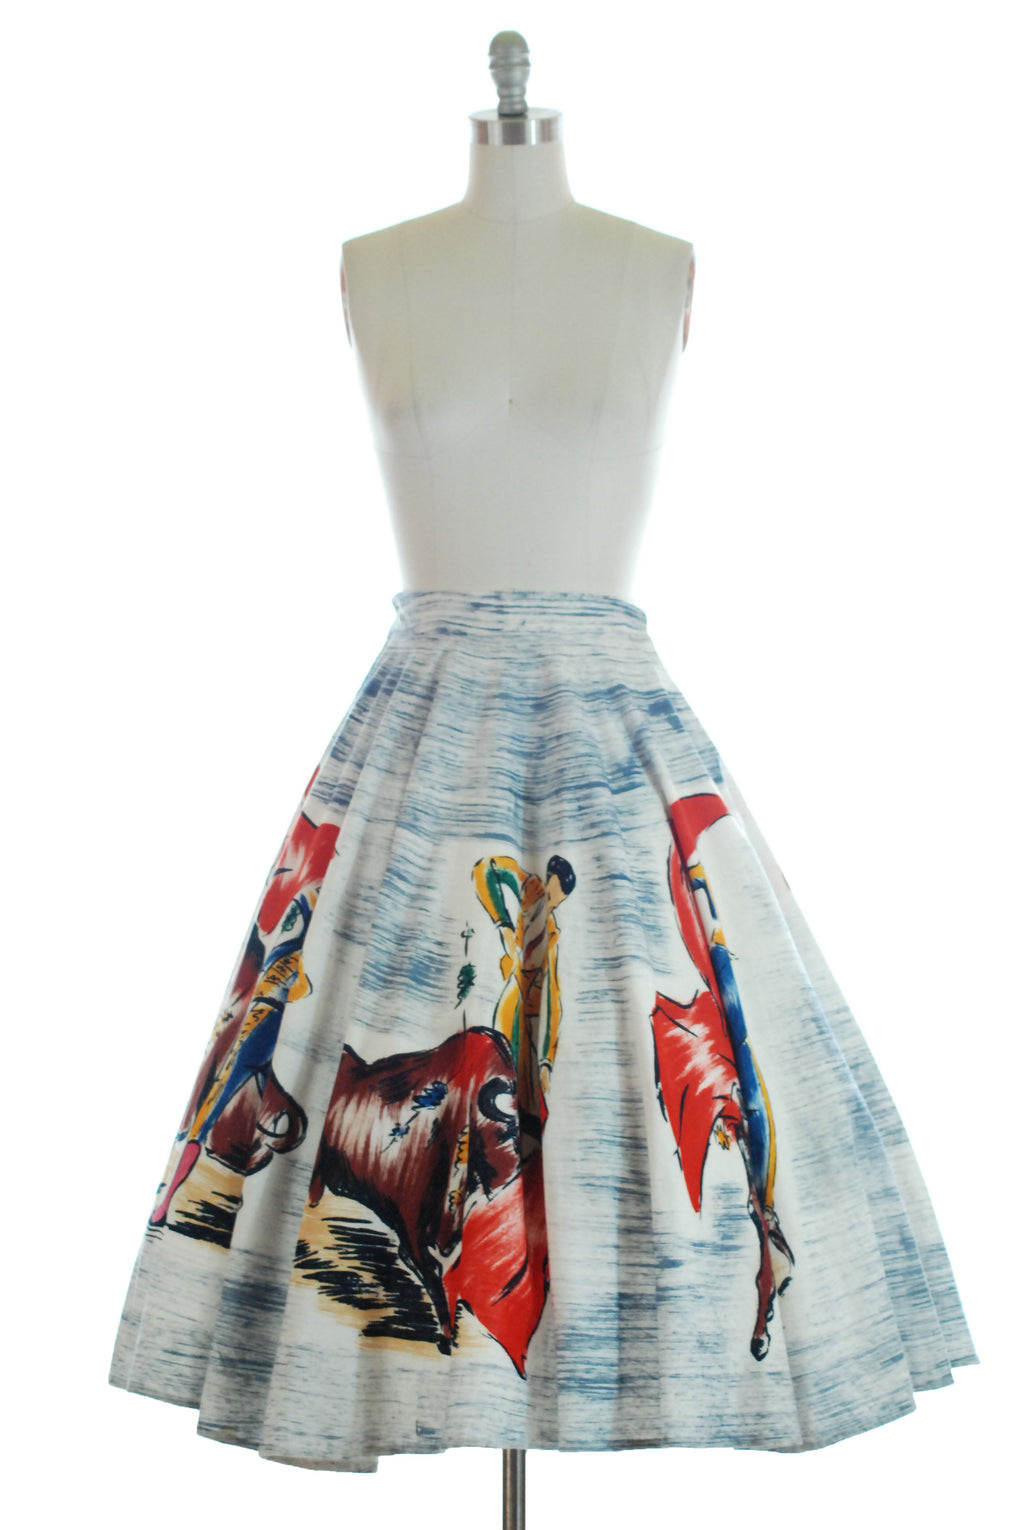 Classic 1950s Handpainted Tourist Skirt Featuring Bullfighting Scenes.